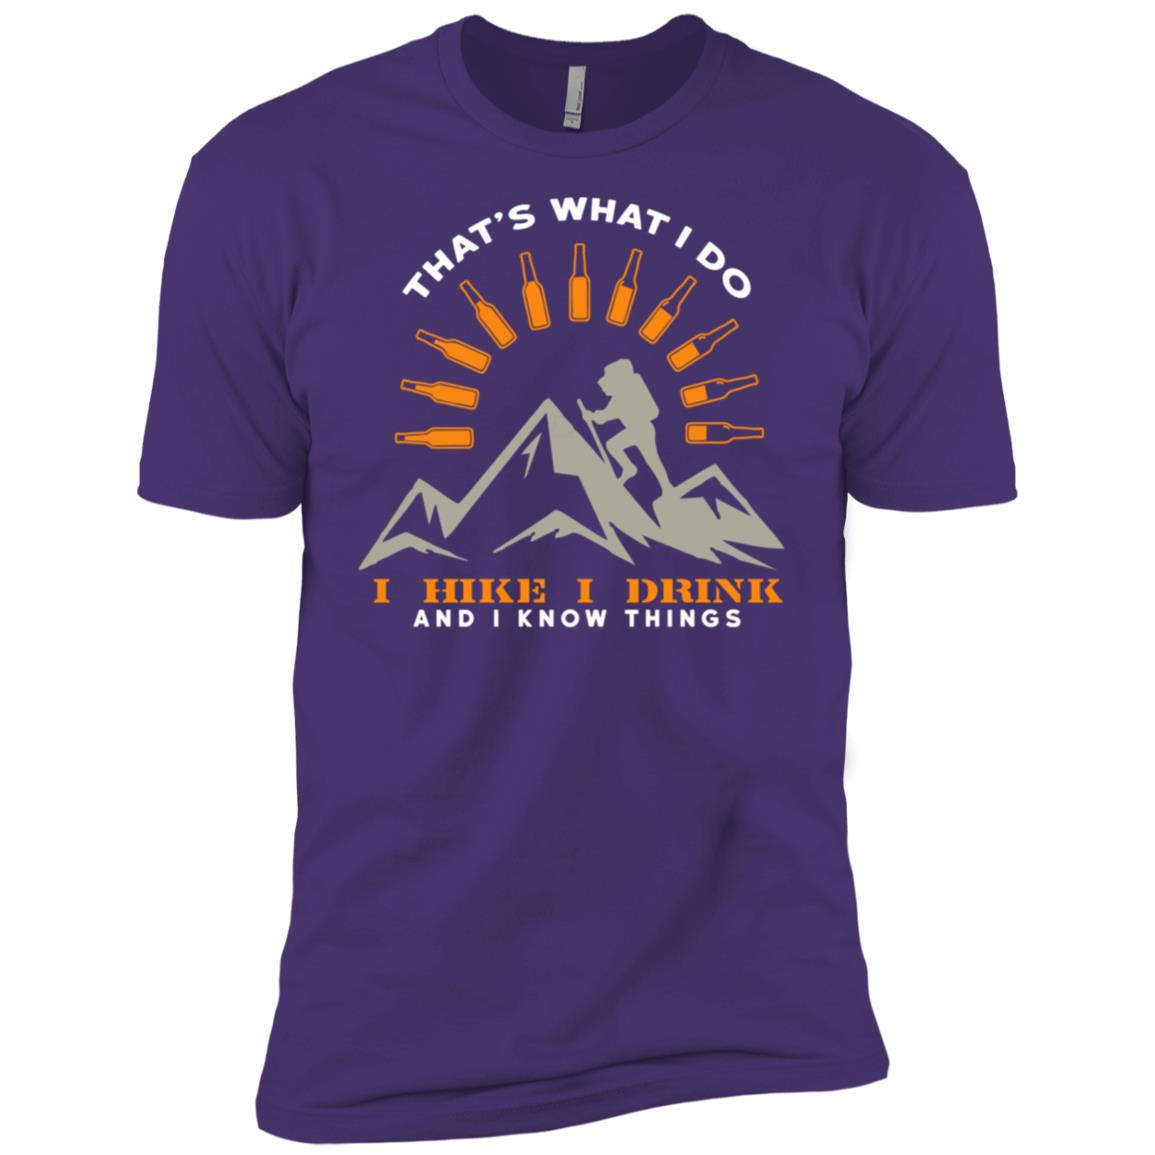 I Hike I Drink And I Know Things Funny Hiking Men Short Sleeve T-Shirt